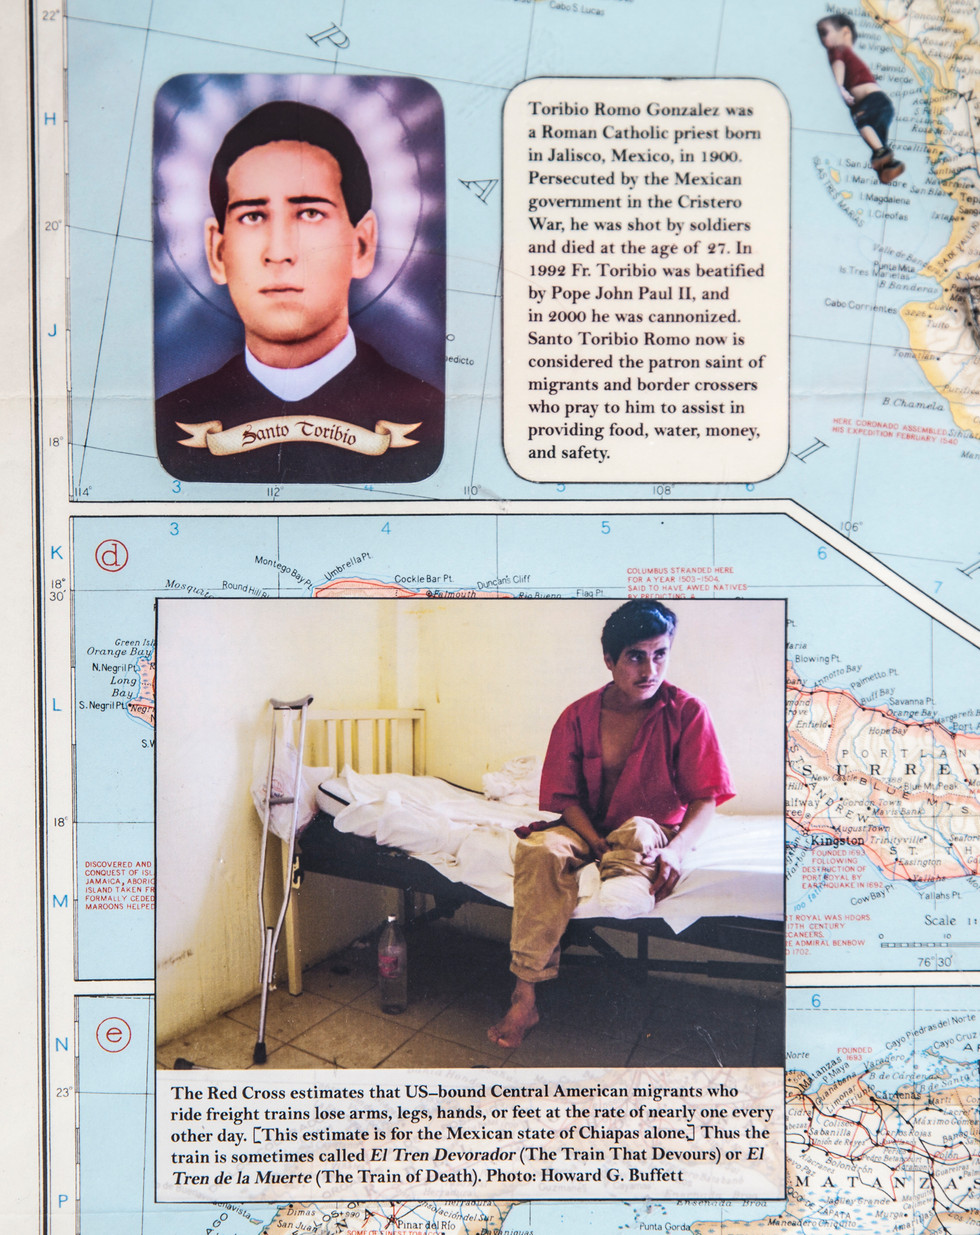 Photographs adhered to the map are images taken from Sonia Nazarin's book; text is a distillation of information from her Pulitzer Prize winning reporting. In upper righthand corner, the 2015 image of drowned Syrian child, Alan Kurdi, illustrates that refugee crisis is worldwide.